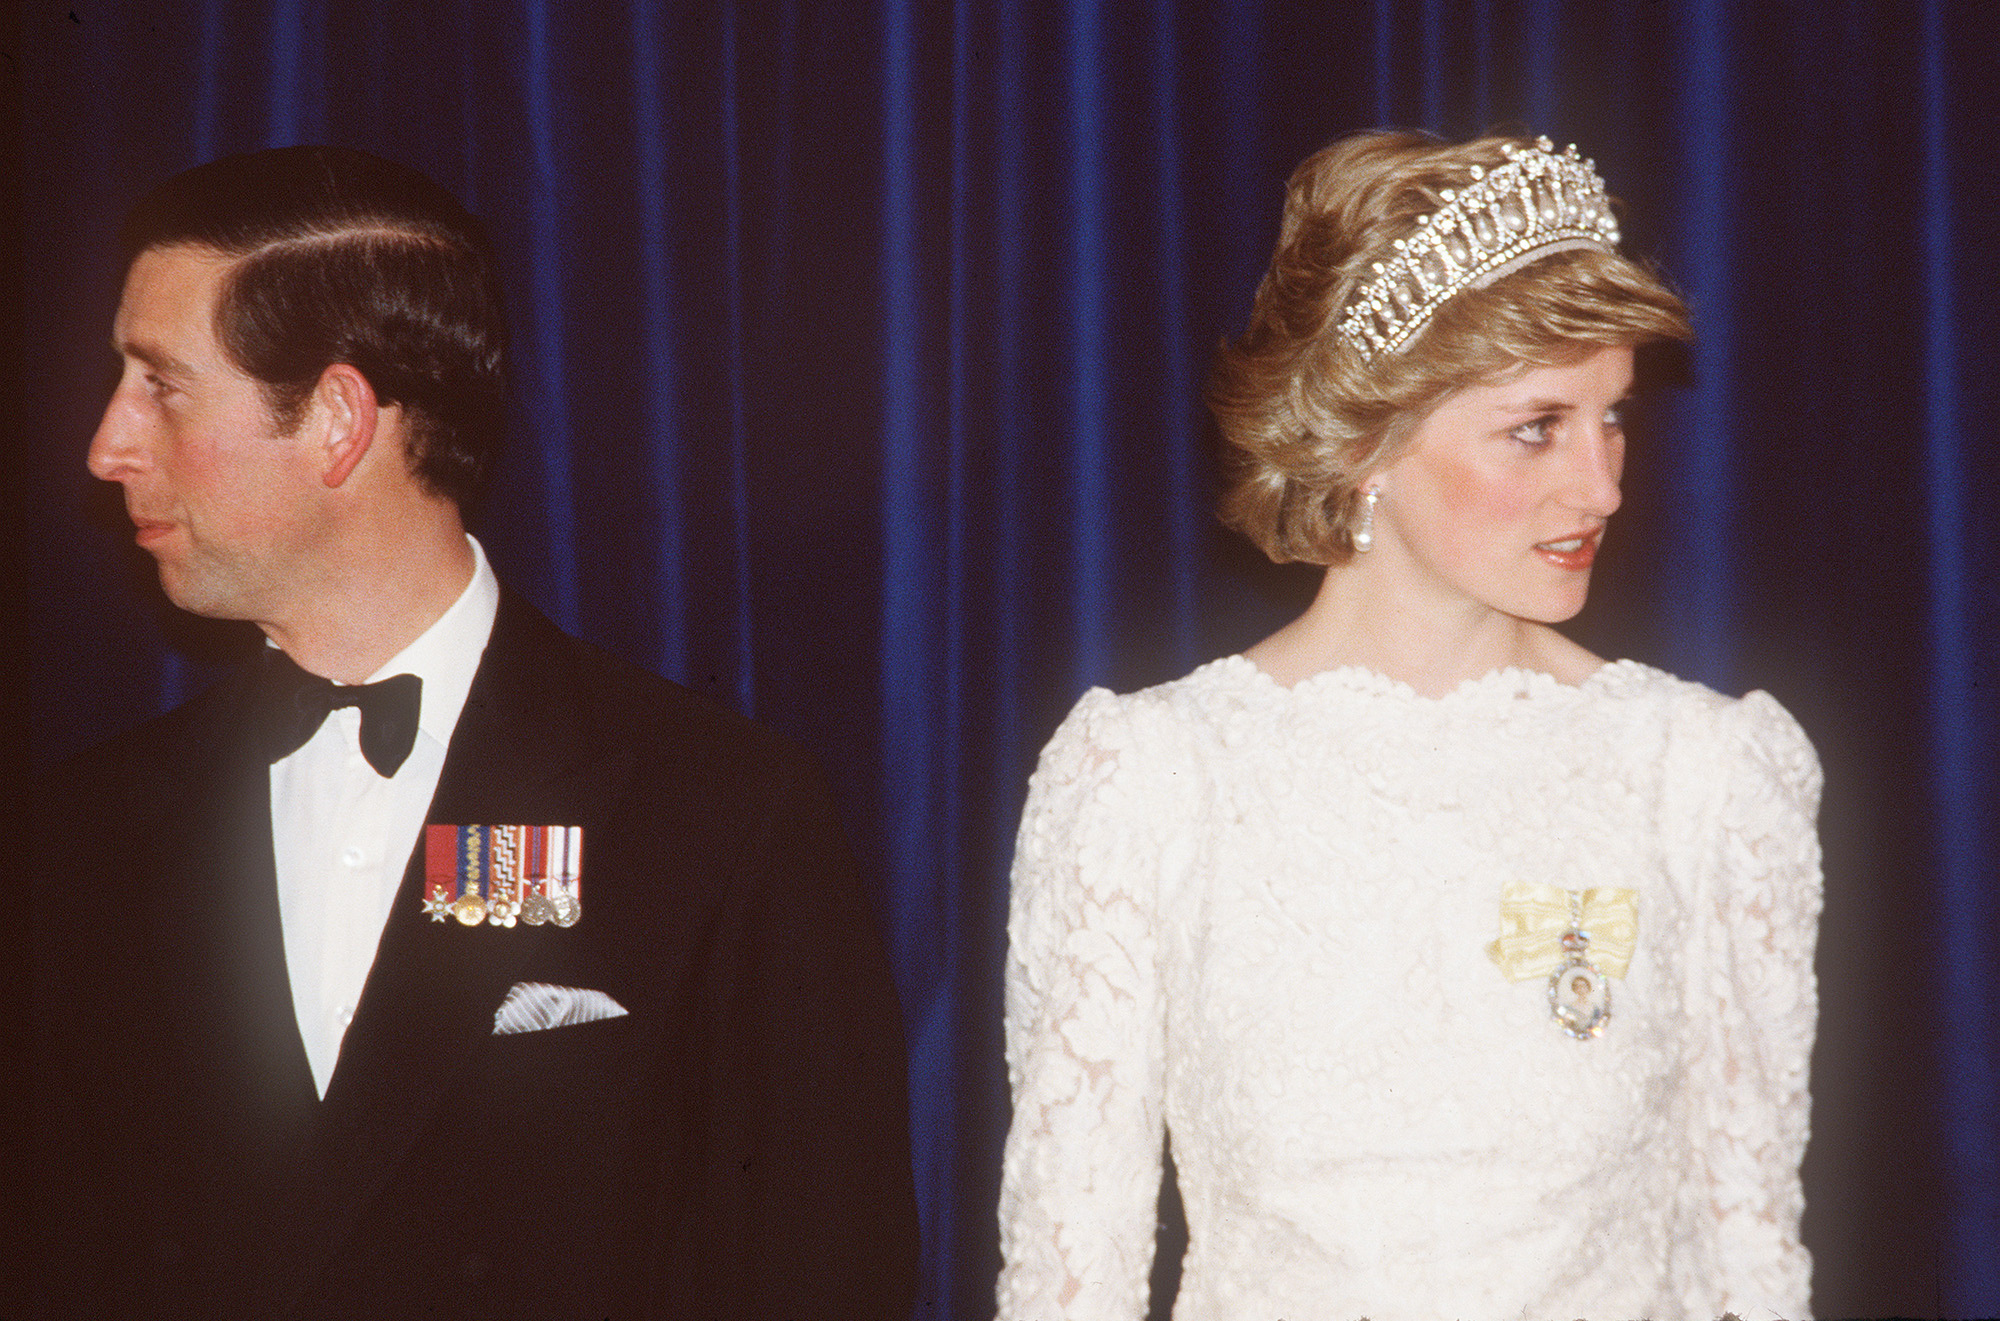 VANCOUVER - MAY 03: Prince Charles, Prince of Wales and Diana, Princess of Wales, wearing a white Murray Arbeid dress and Queen Mary;s diamond and pearl tiara, attend a dinner on May 03, 1986 in Vancouver, Canada. (Photo by Anwar HusseiVANCOUVER - MAY 03: Prince Charles, Prince of Wales and Diana, Princess of Wales, wearing a white Murray Arbeid dress and Queen Mary;s diamond and pearl tiara, attend a dinner on May 03, 1986 in Vancouver, Canada. (Photo by Anwar Hussein/Getty Images)n/Getty Images)